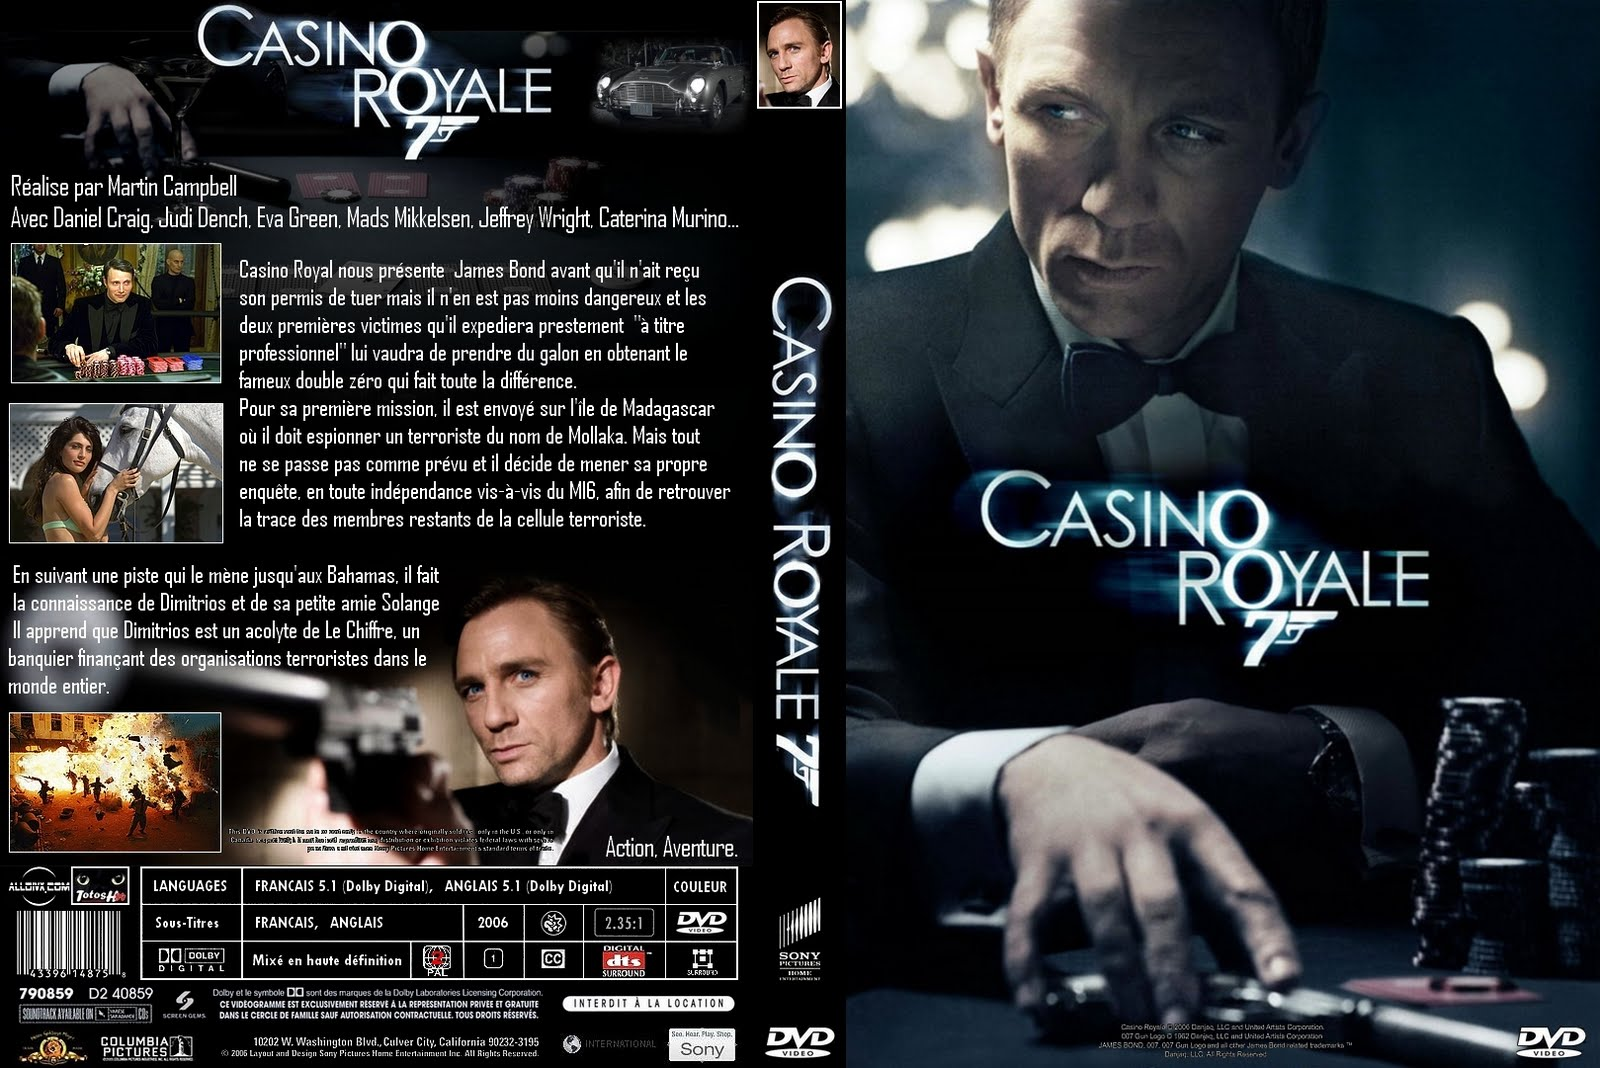 Download Movies for Free: Casino Royale (2006)